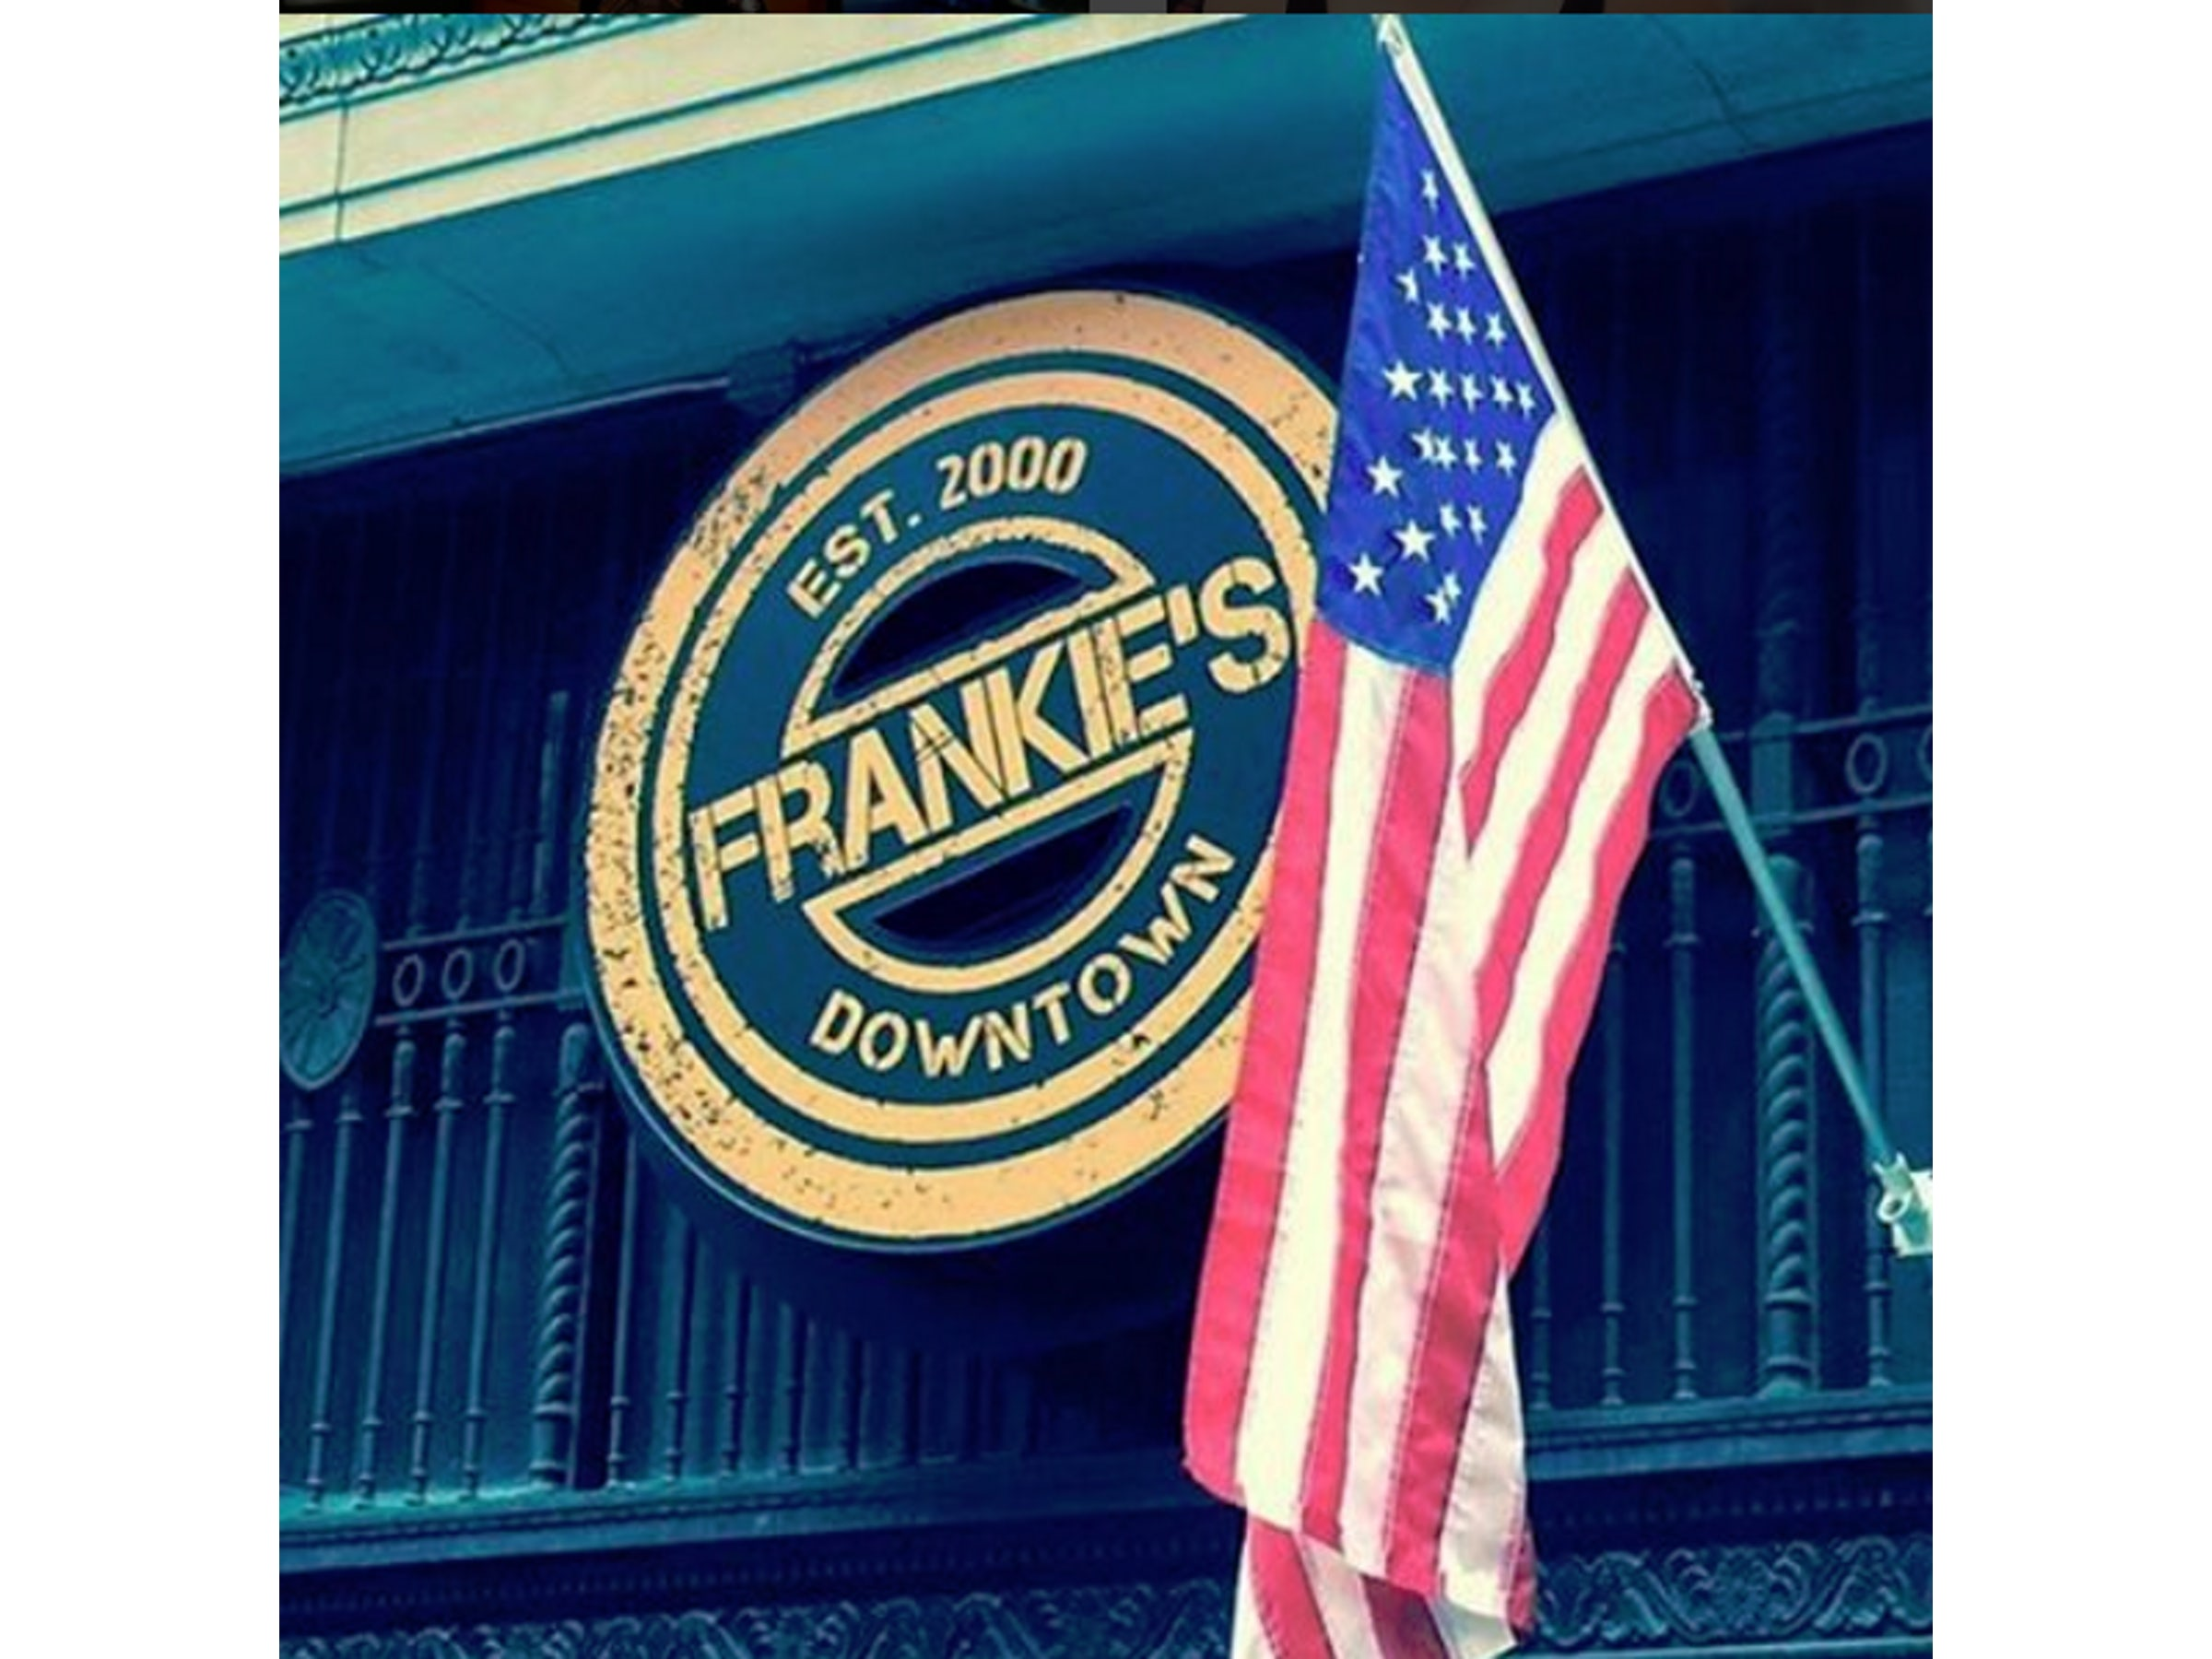 Frankie's Downtown in Beyond Dallas